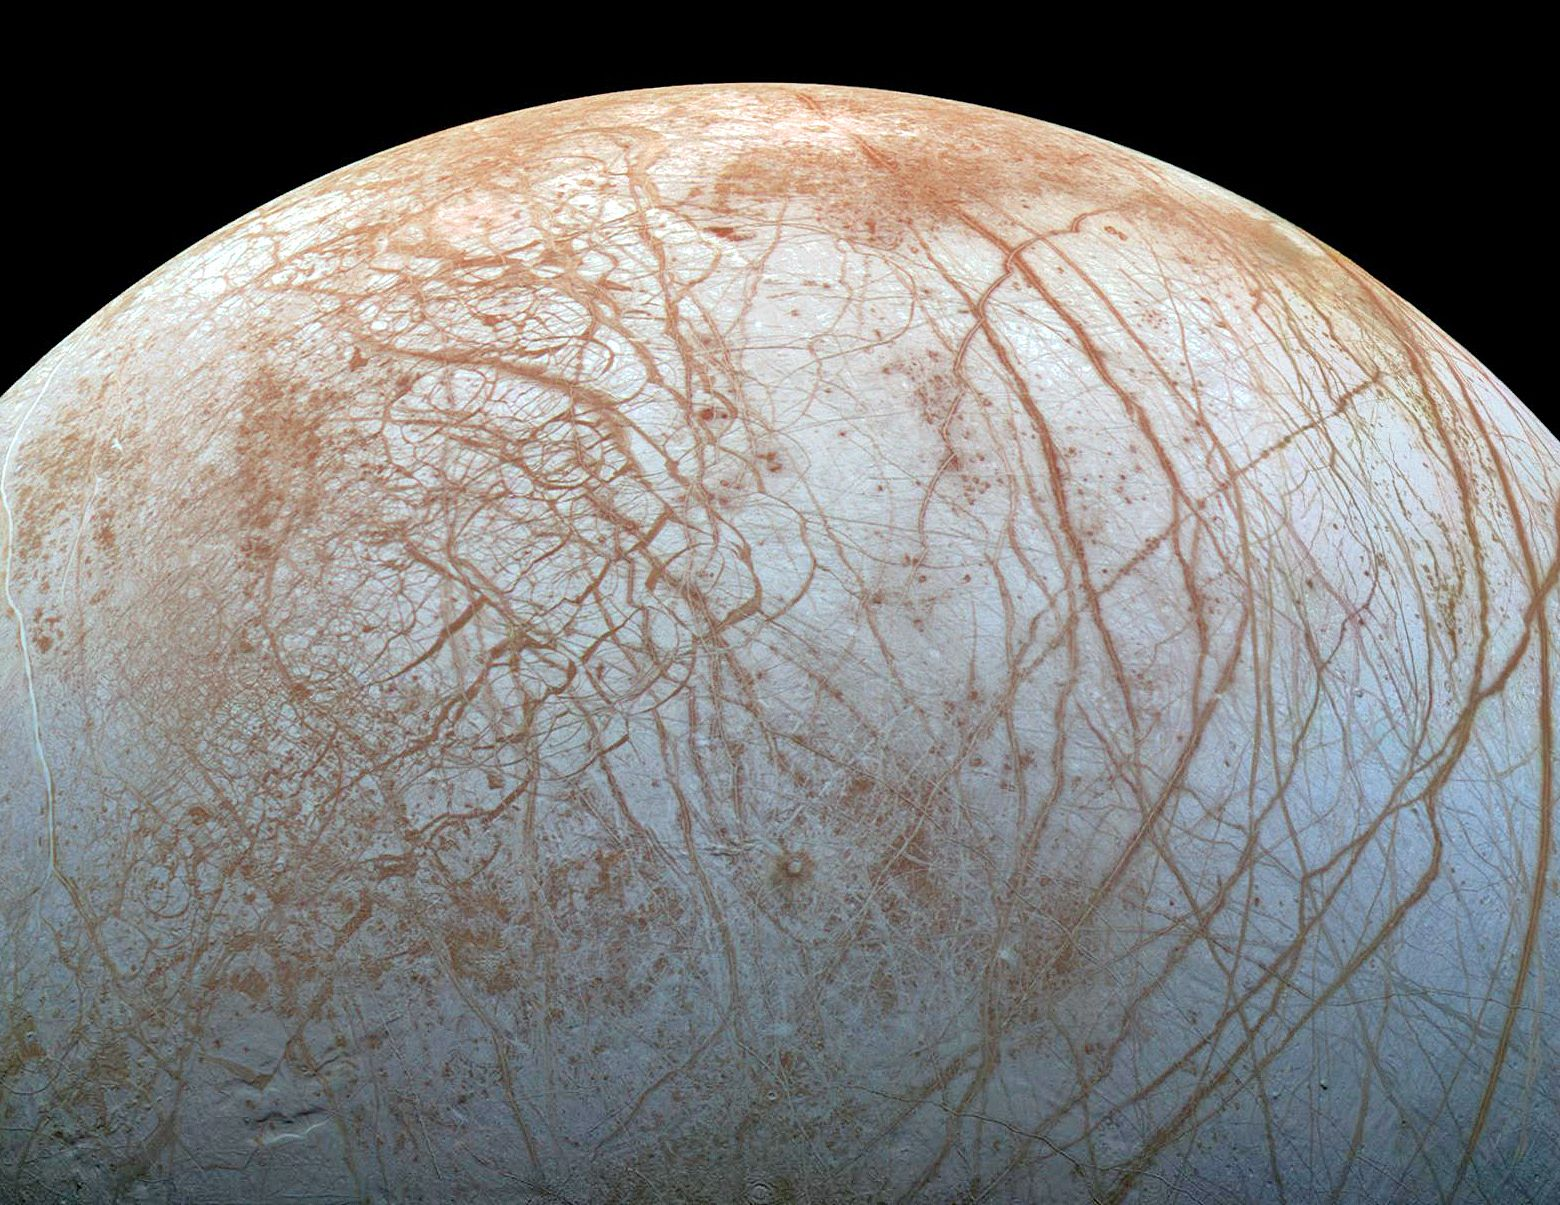 Jupiter's Europa is seriously salty